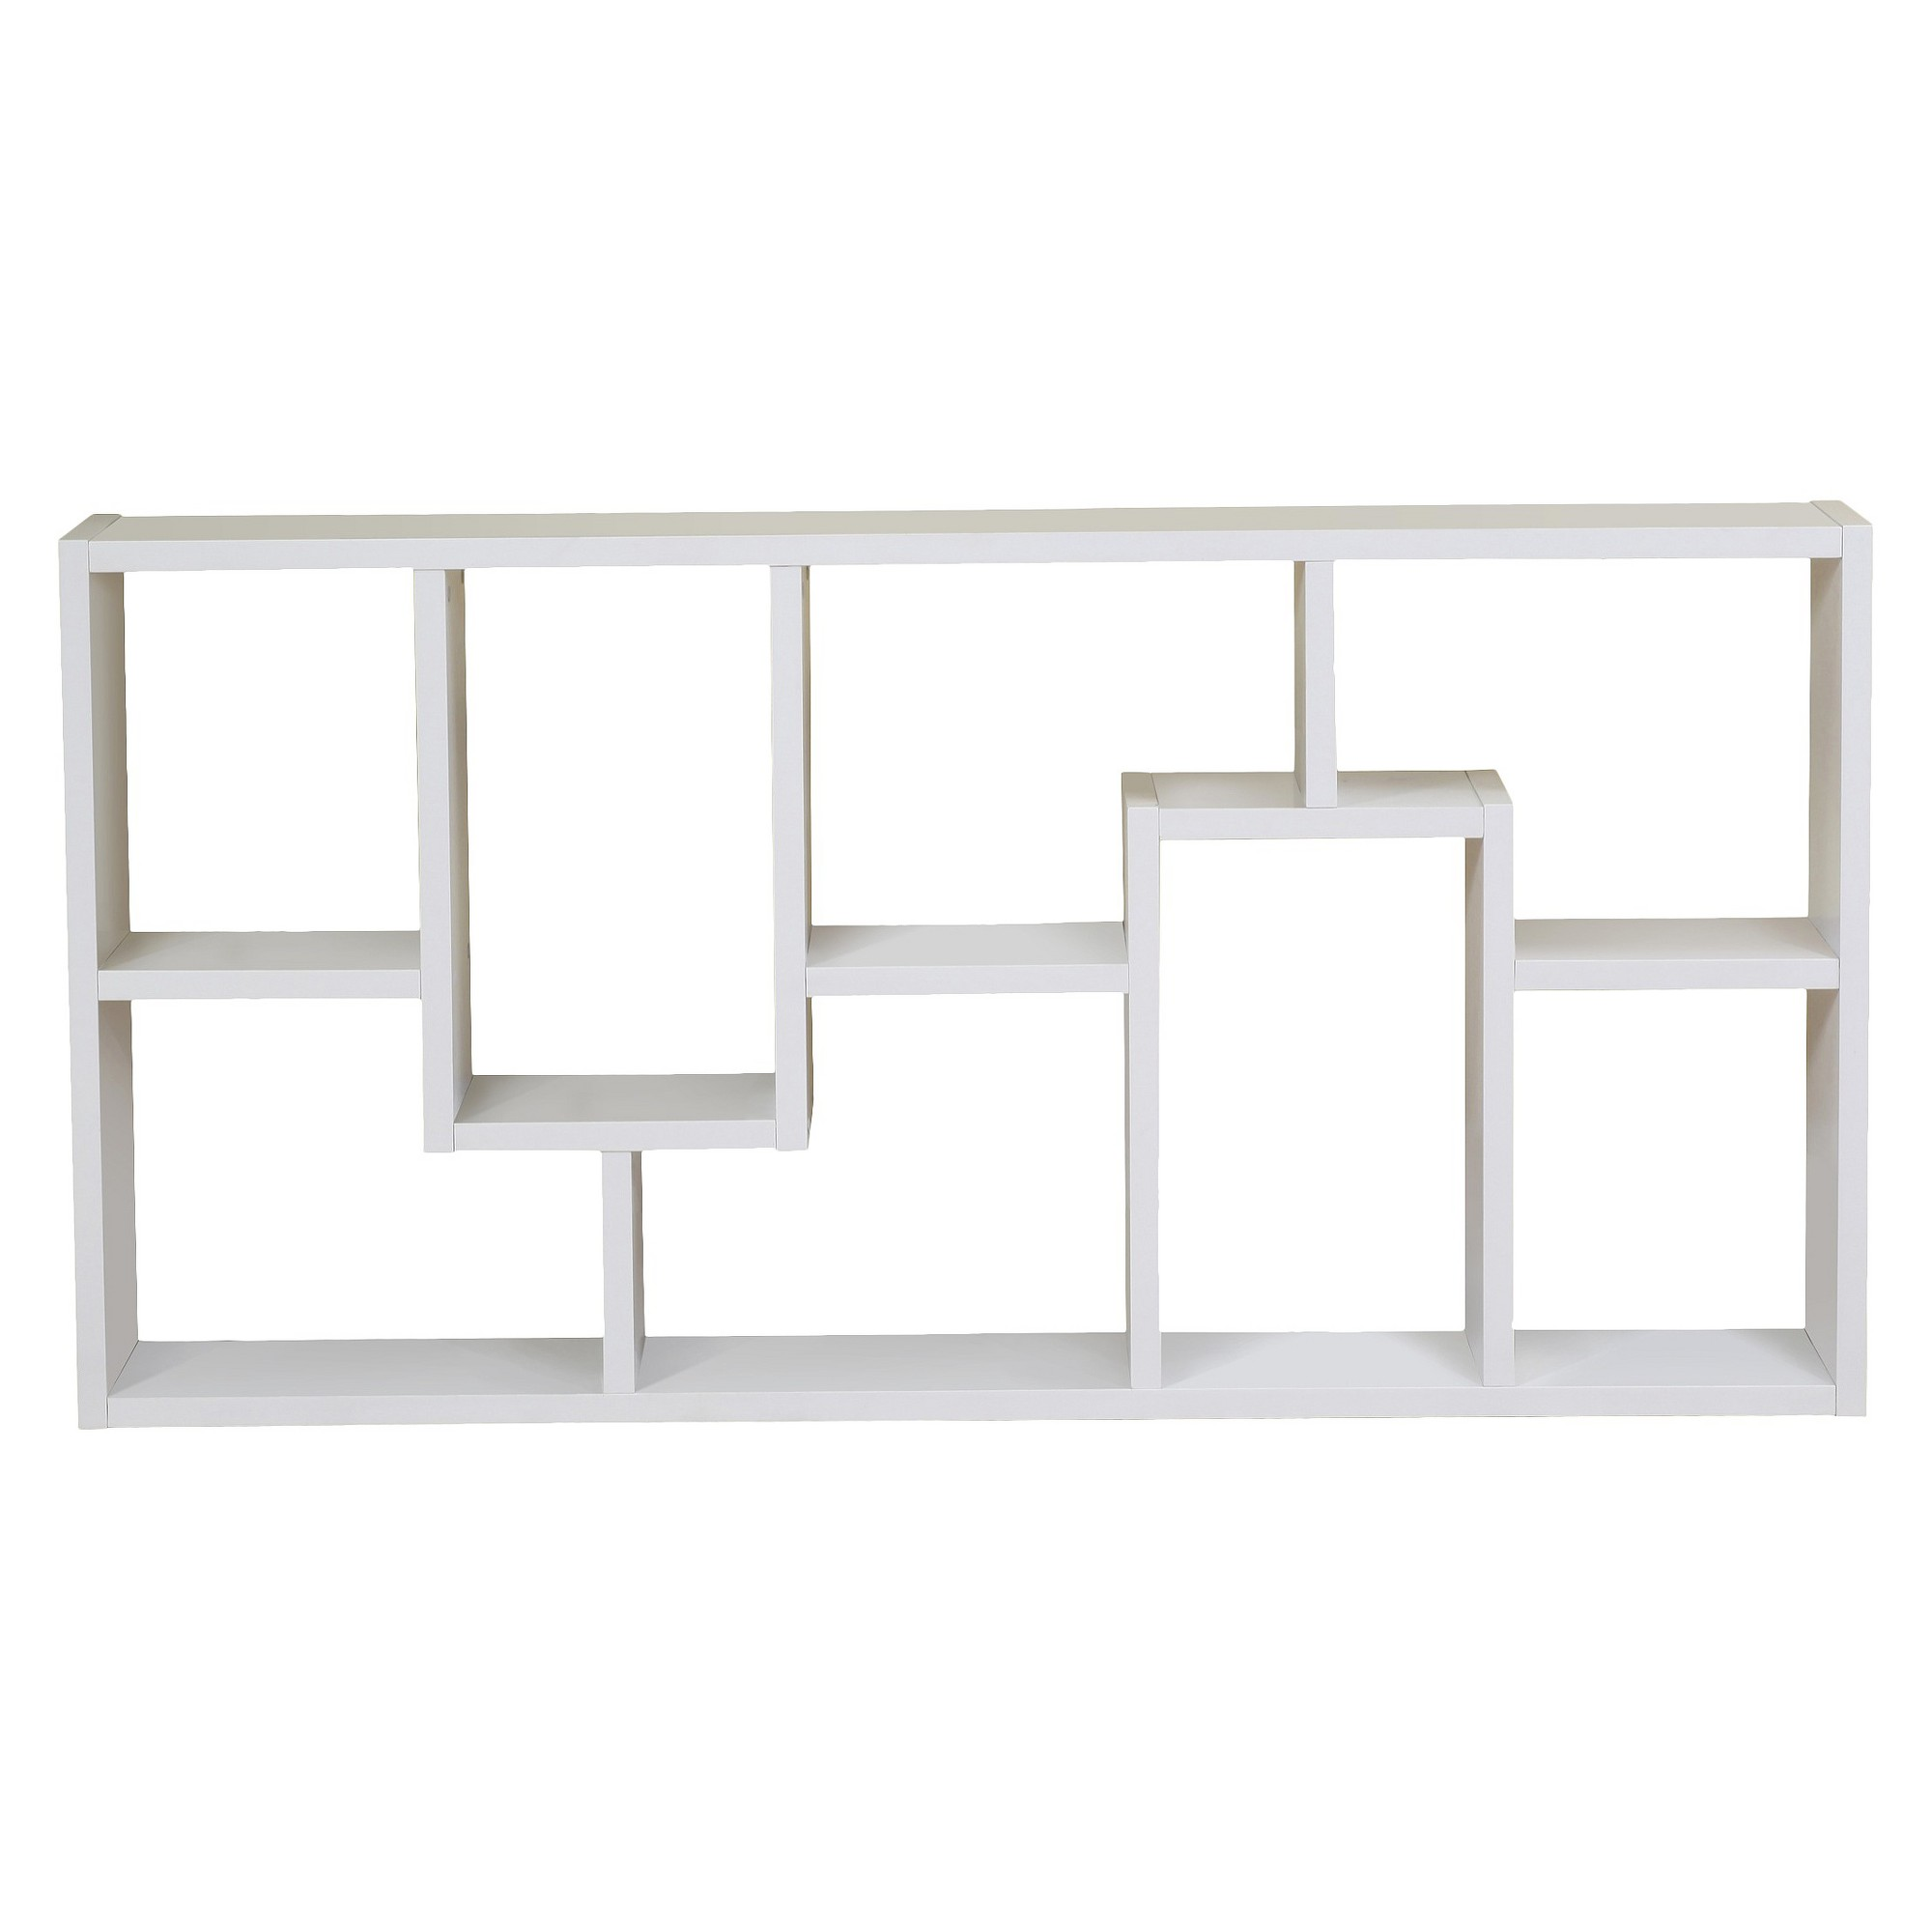 '71'' Highpoint Contoured Bookcase White - ioHOMES'